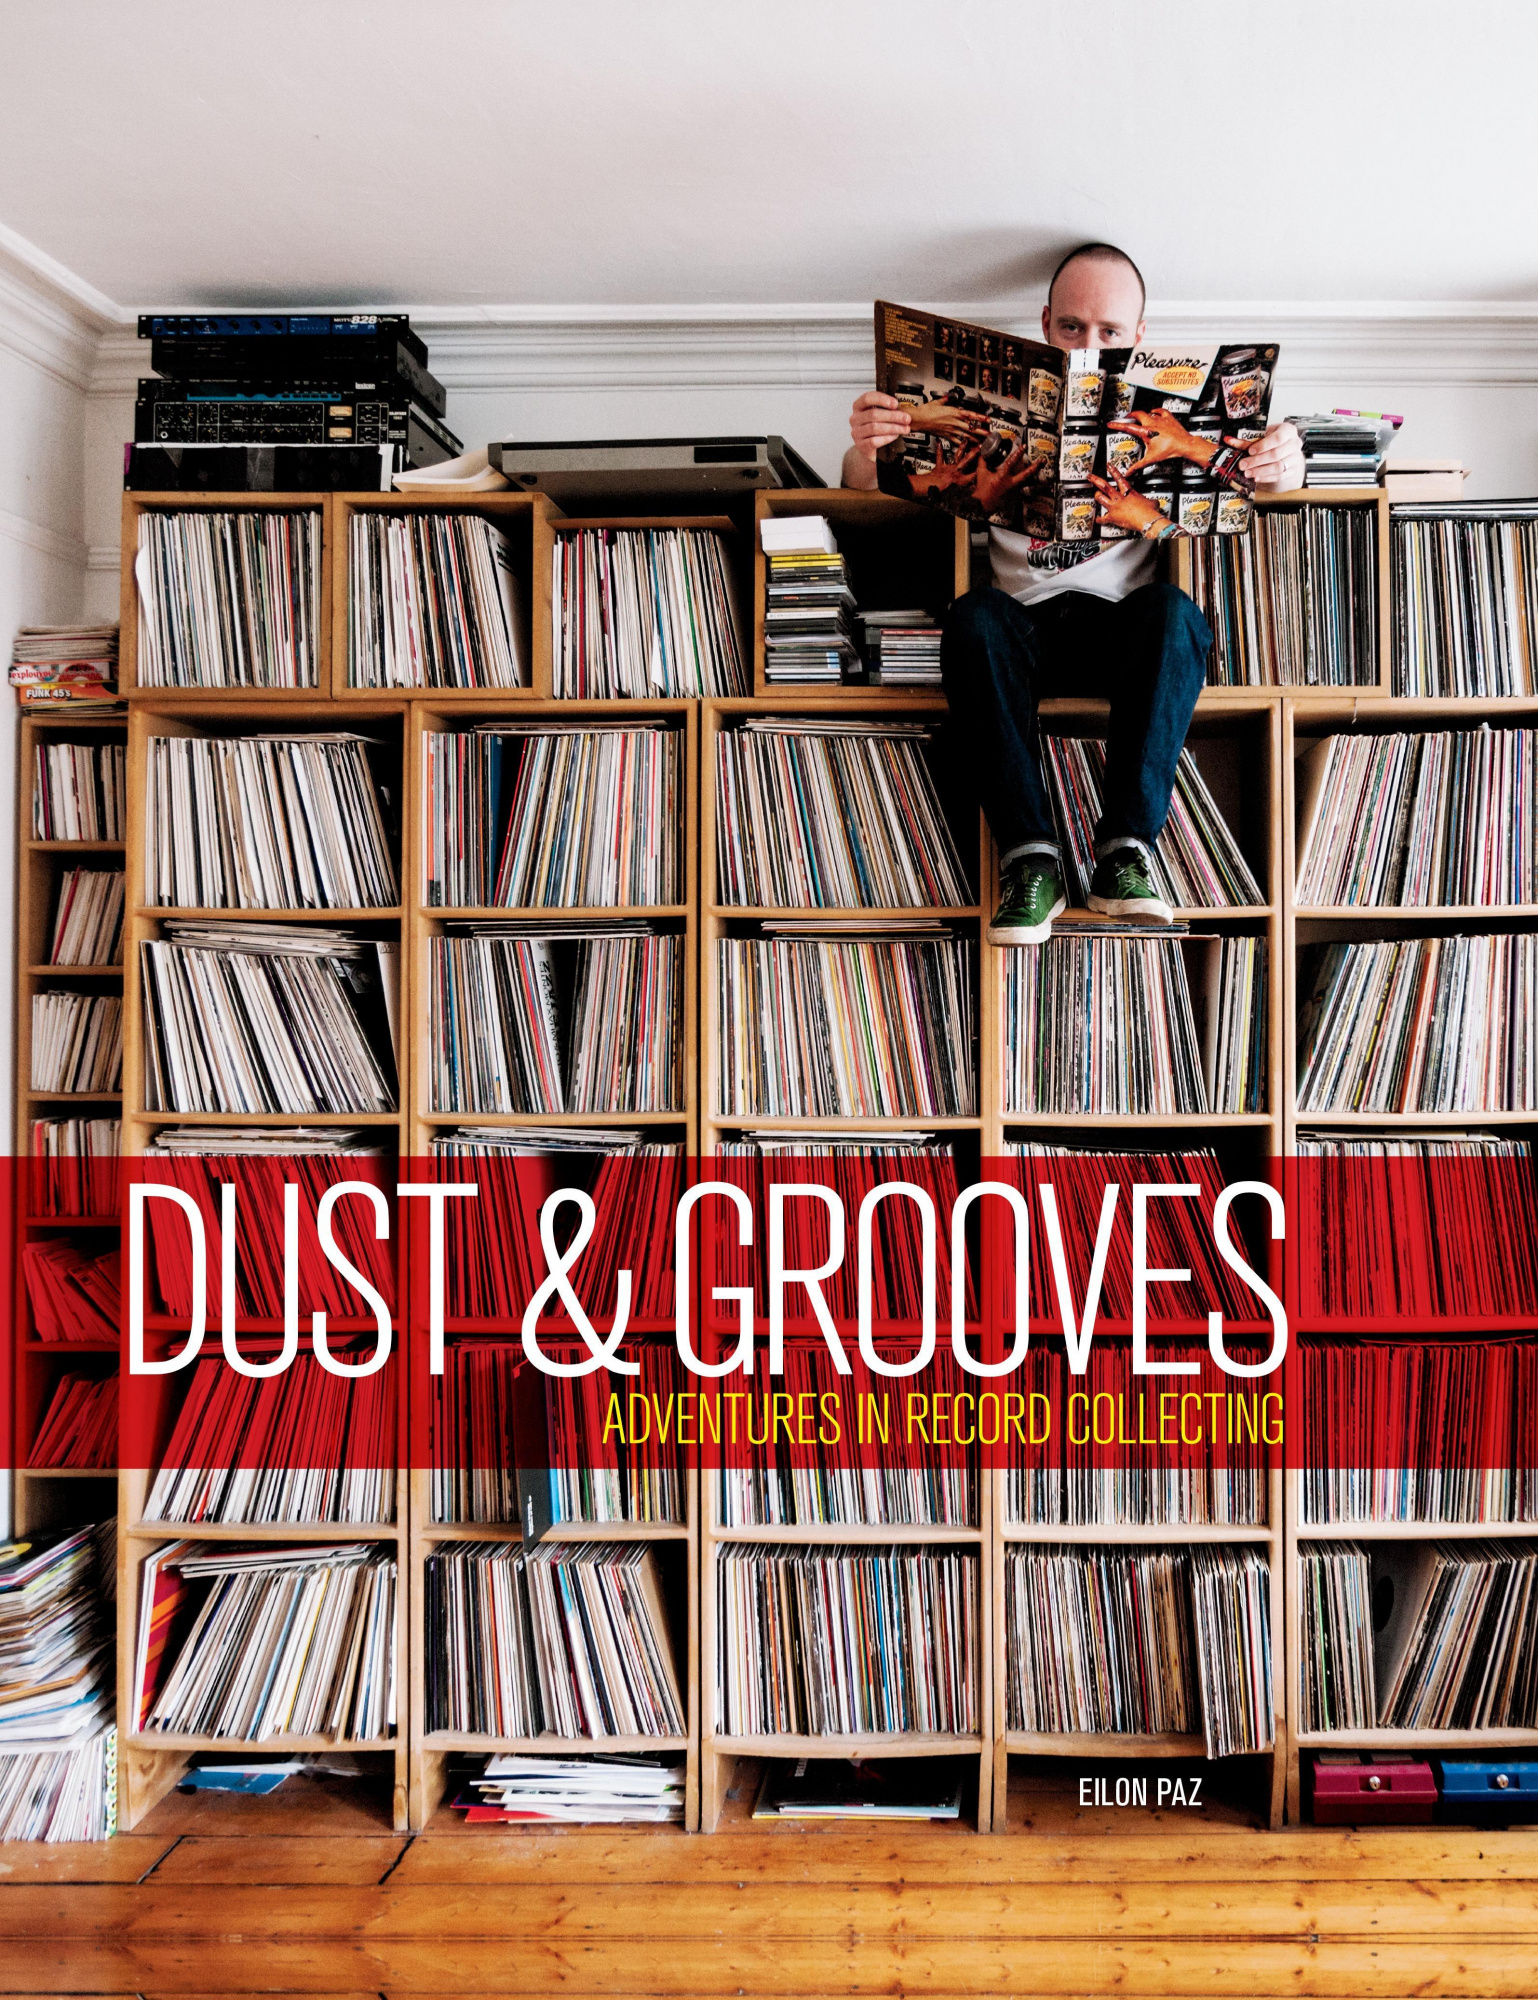 Dust & Grooves: Adventures in Record Collecting by Eilon Paz, ISBN: 9781607748694